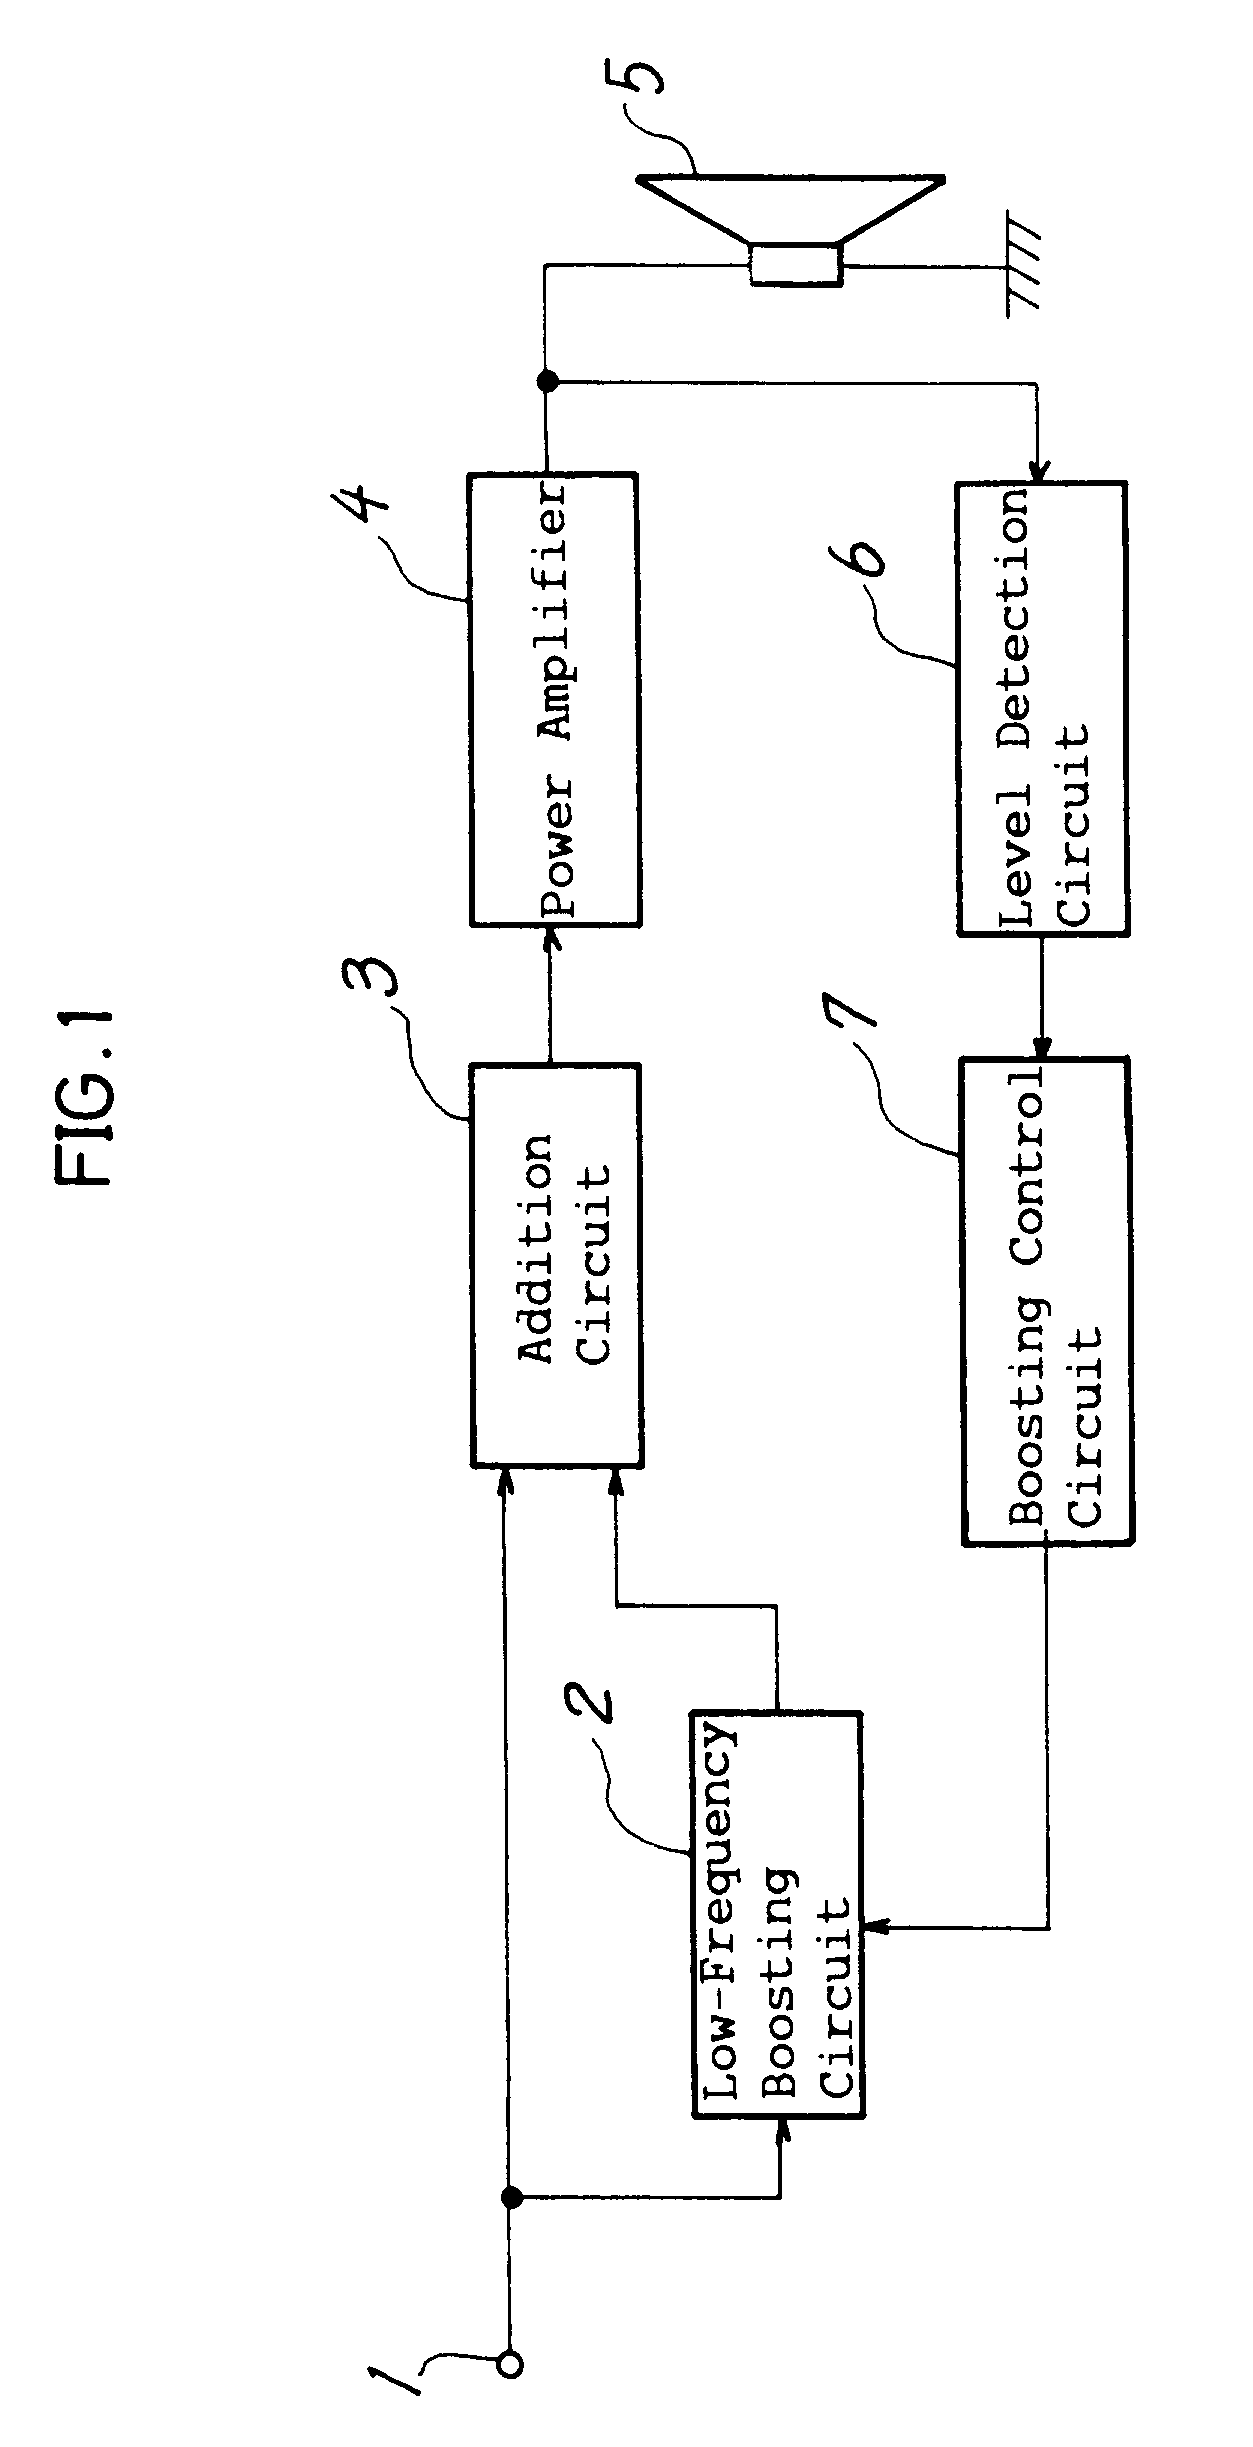 Loudness Control Circuit Diagram | Patent Ep0287057b1 Automatic Loudness Control Circuit Google Patents